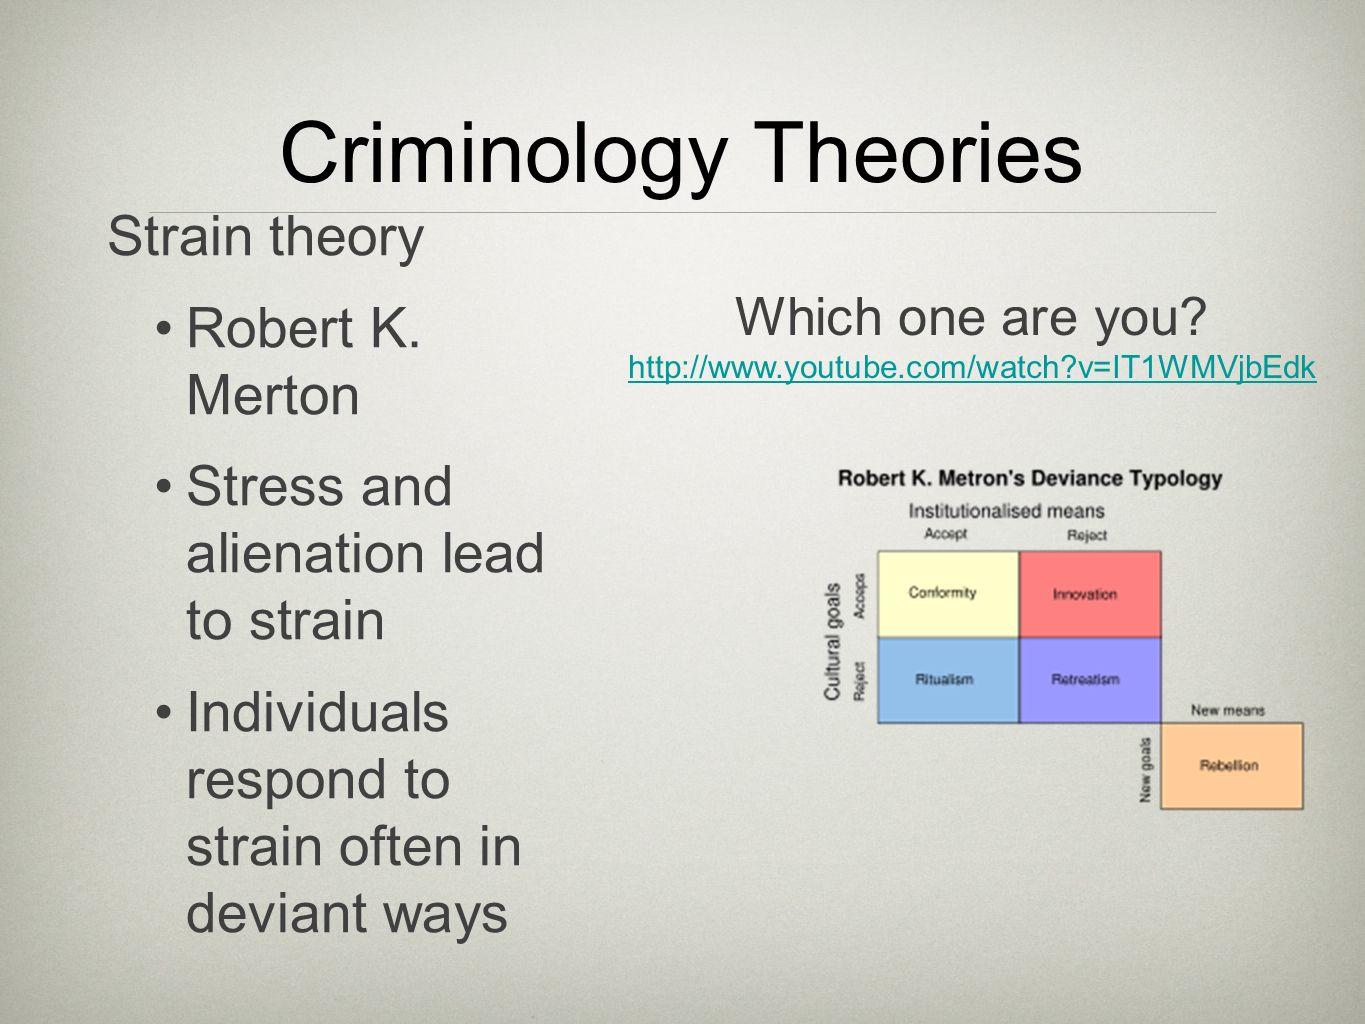 strain theory by robert merton Robert merton's (1957) theories of anomie and strain are among the most widely examined theories of criminality messner and rosenfeld's (1994) theory of institutional anomie built on merton's conception of anomie, delineating how specific institutions lead to conditions of anomie and criminality.